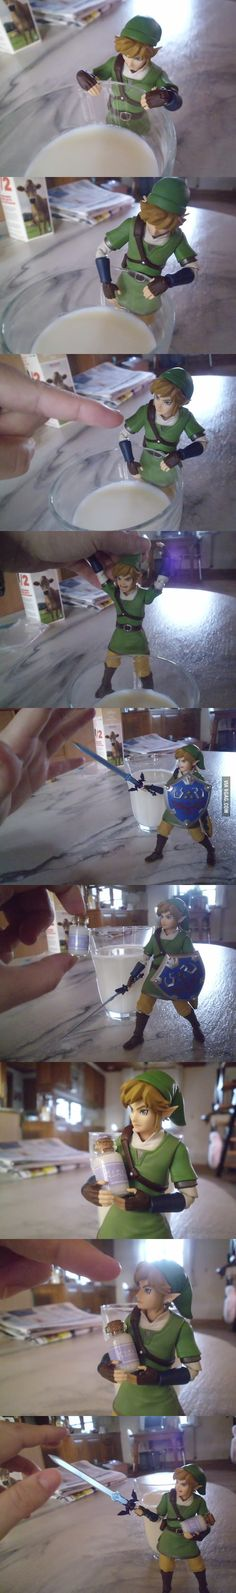 Little Link and his milk